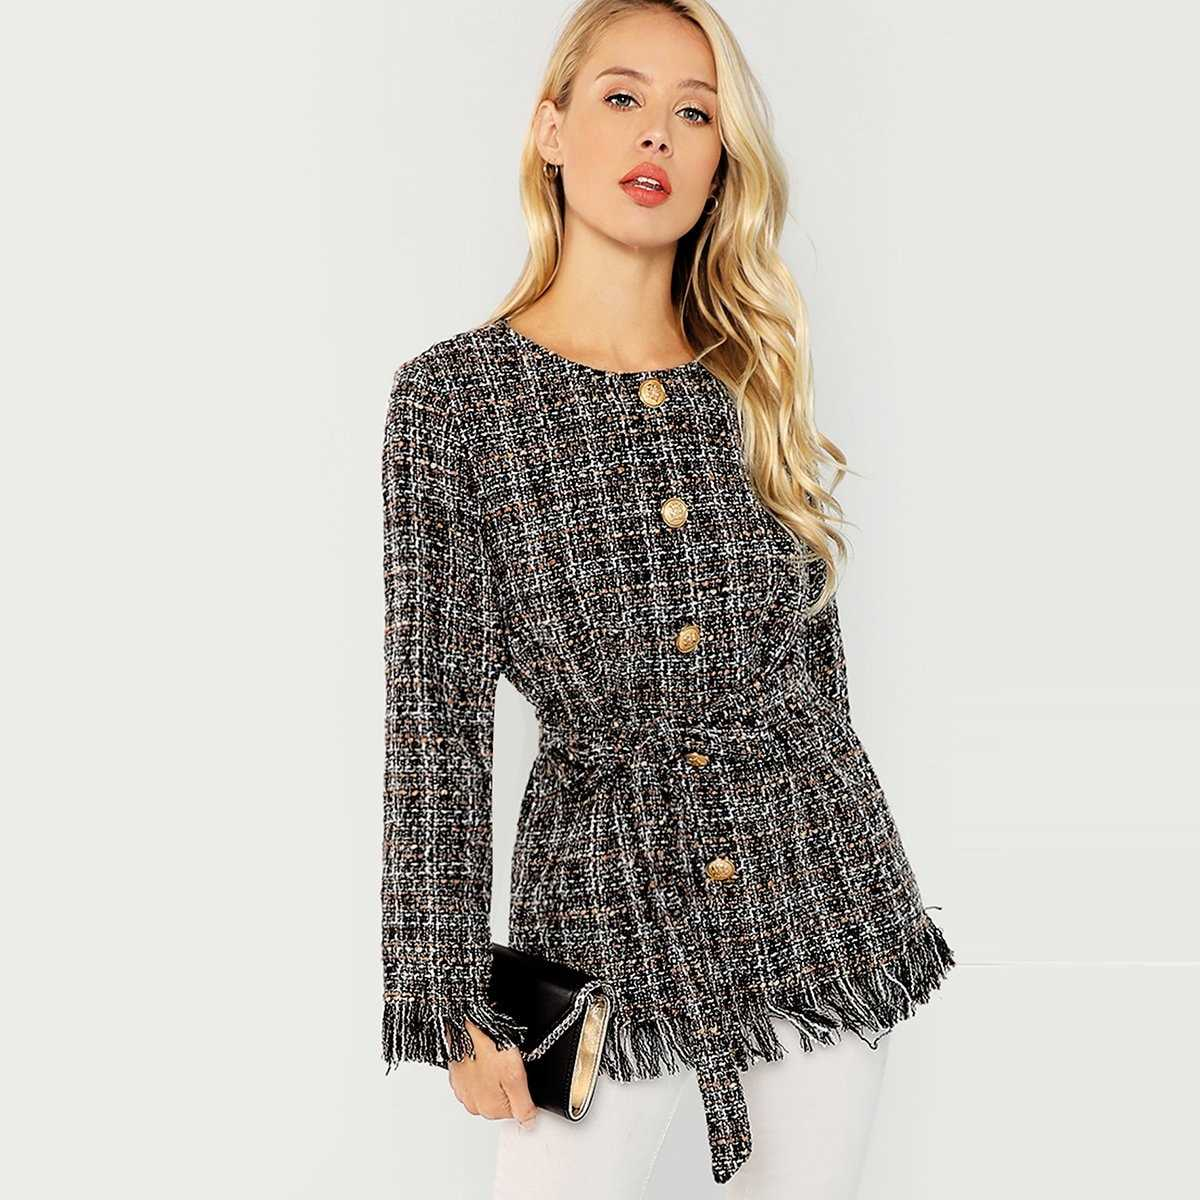 Raw Hem Belted Tweed Coat in Multicolor by ROMWE on GOOFASH